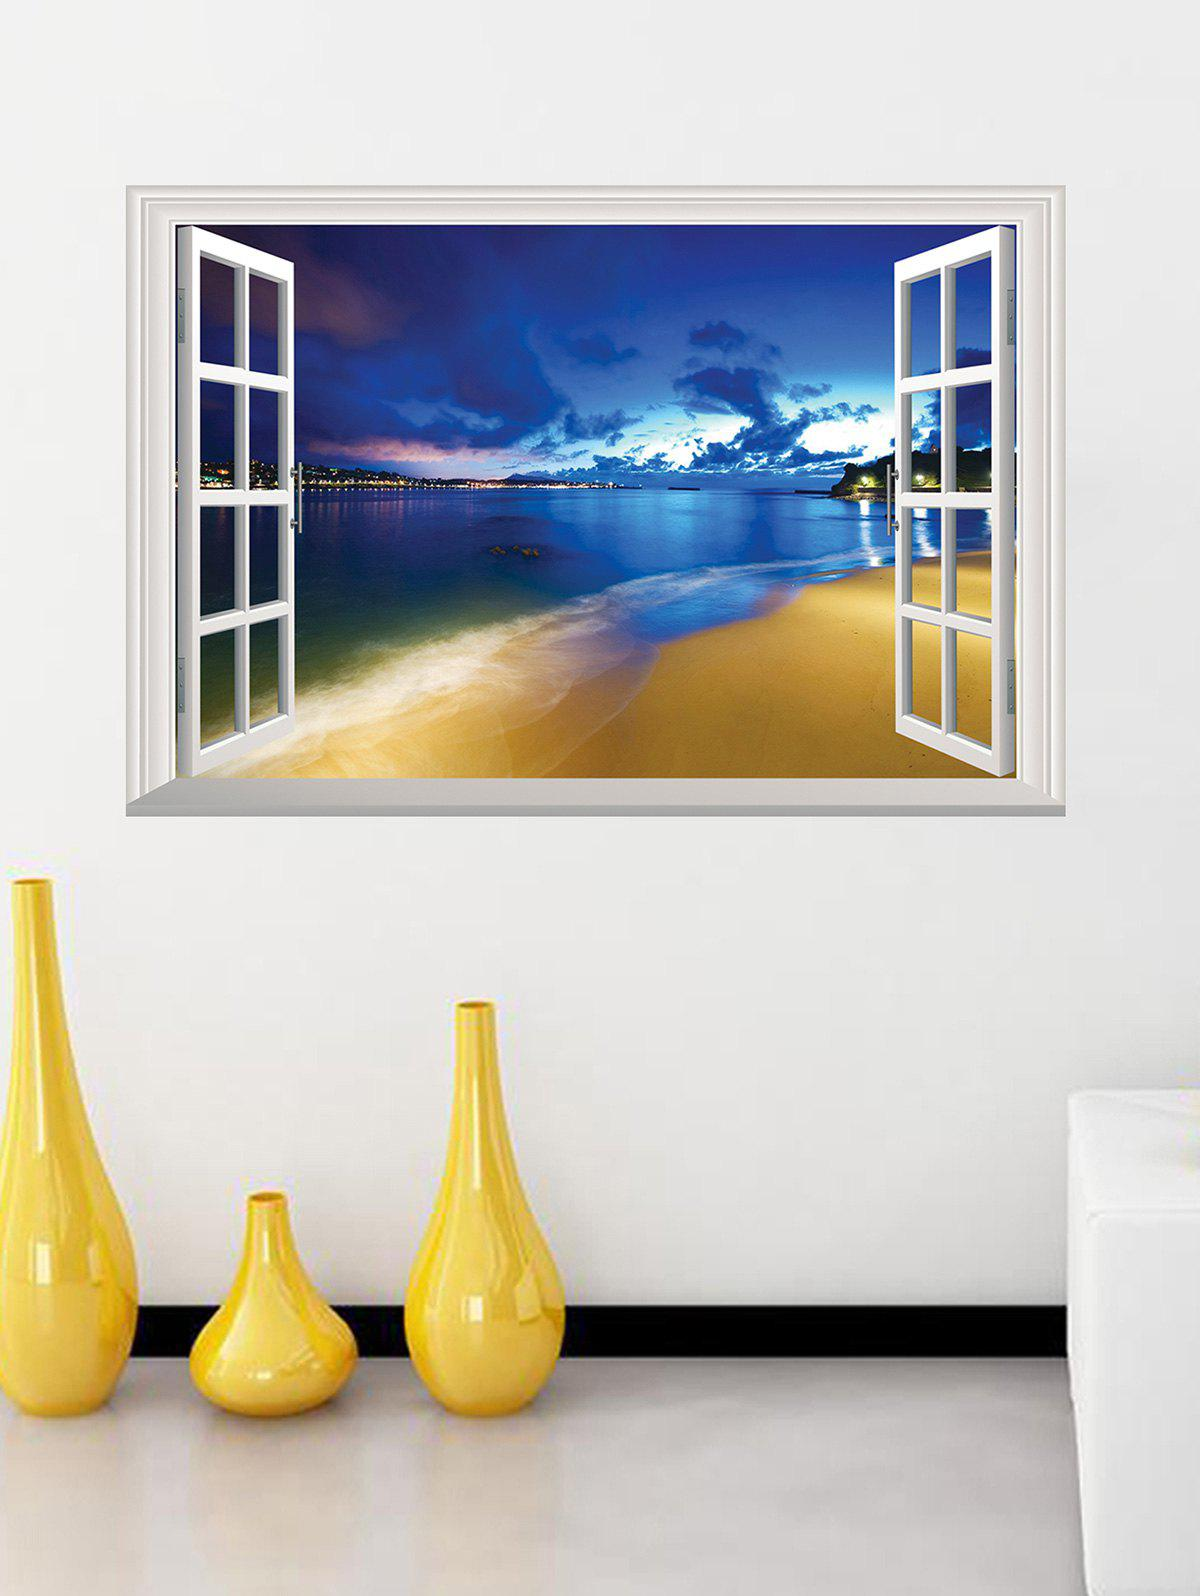 Removable 3D Seaside Night Fake Window Wall StickerHOME<br><br>Size: 50*70CM; Color: BLUE; Wall Sticker Type: 3D Wall Stickers; Functions: Decorative Wall Stickers; Theme: Landscape; Material: PVC; Feature: Removable; Weight: 0.3146kg; Package Contents: 1 x Wall Sticker;